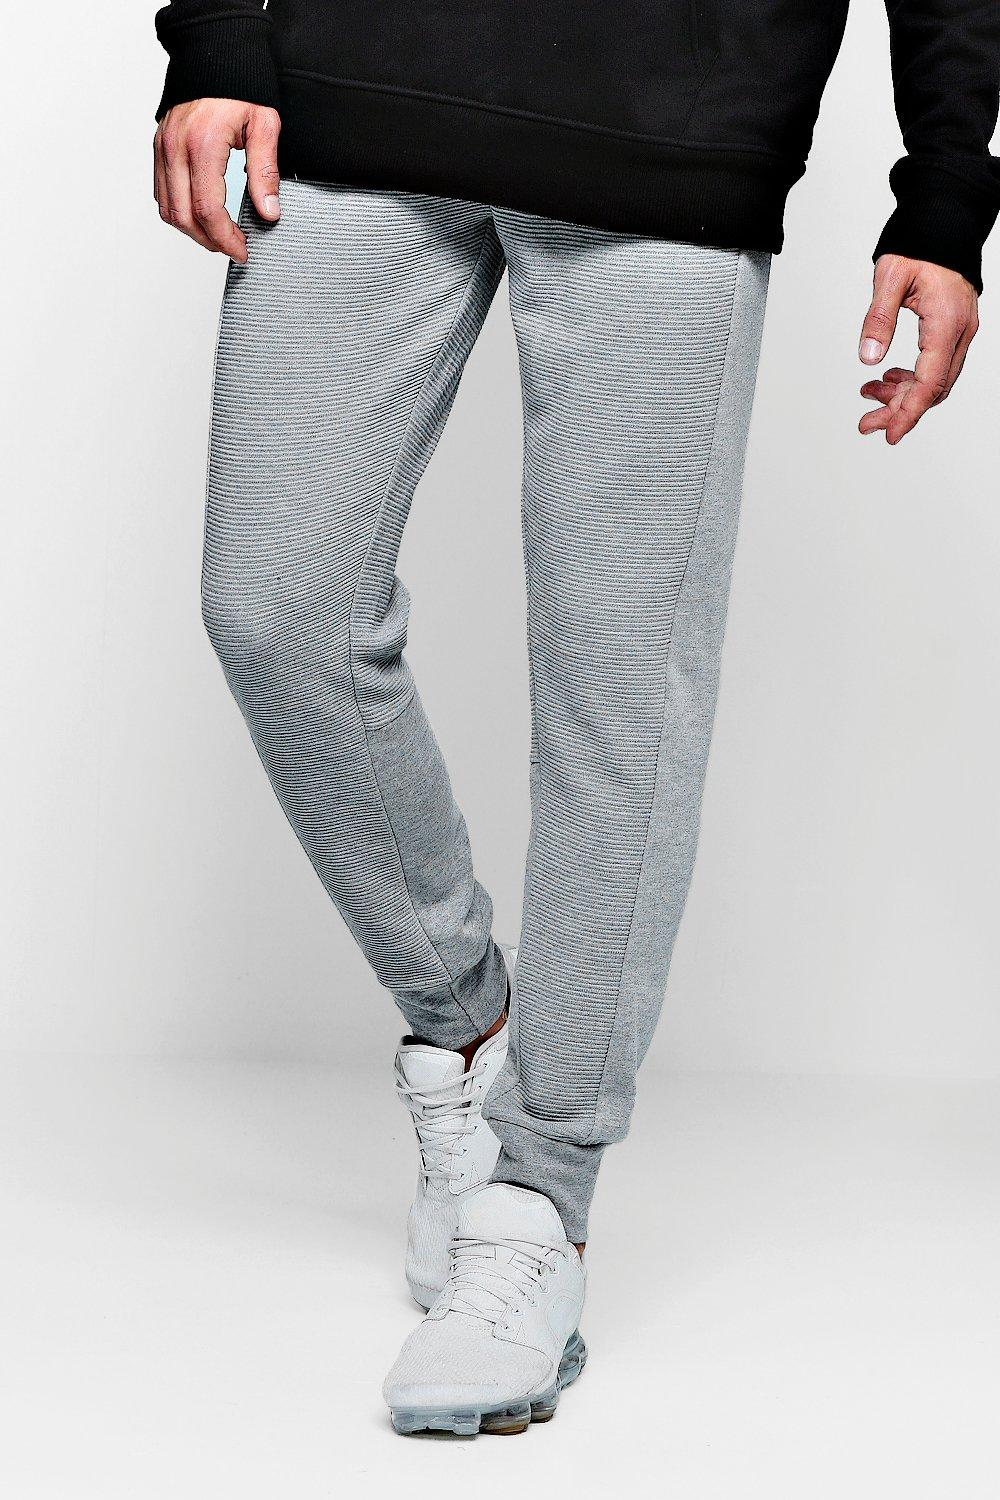 Joggers Checked marl Jersey Panel grey Side AqngvOPt